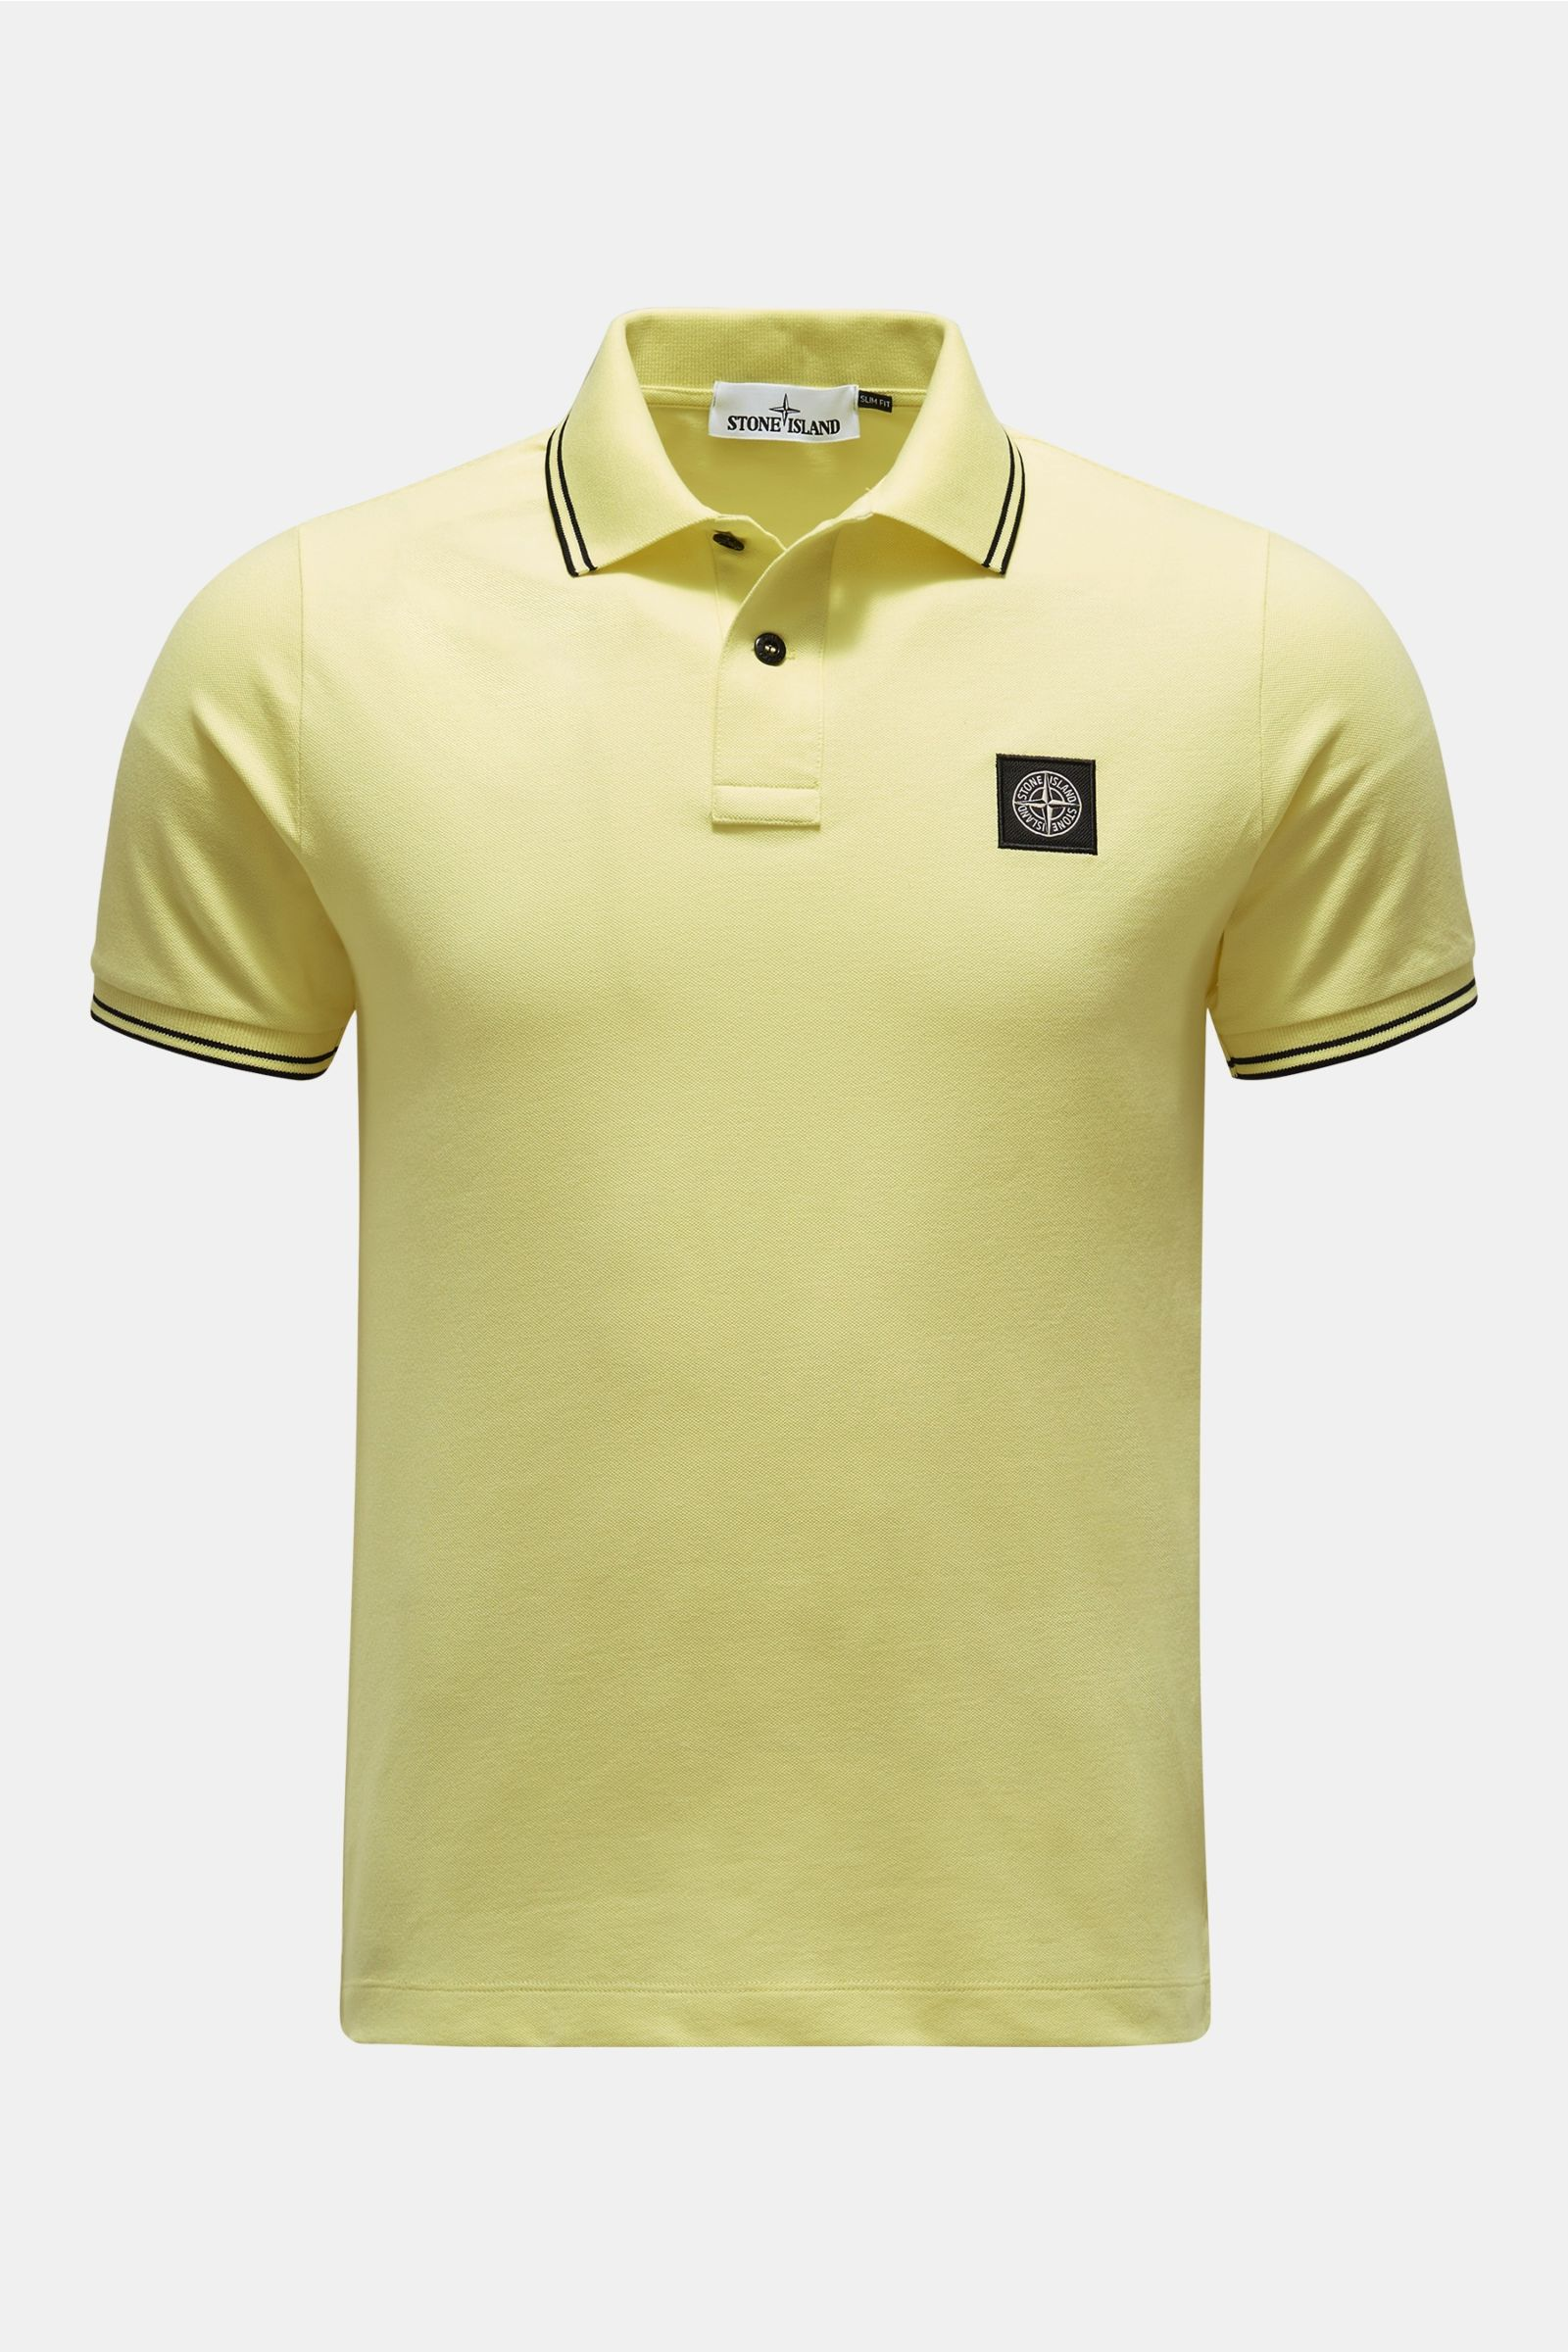 Polo shirt pastel yellow